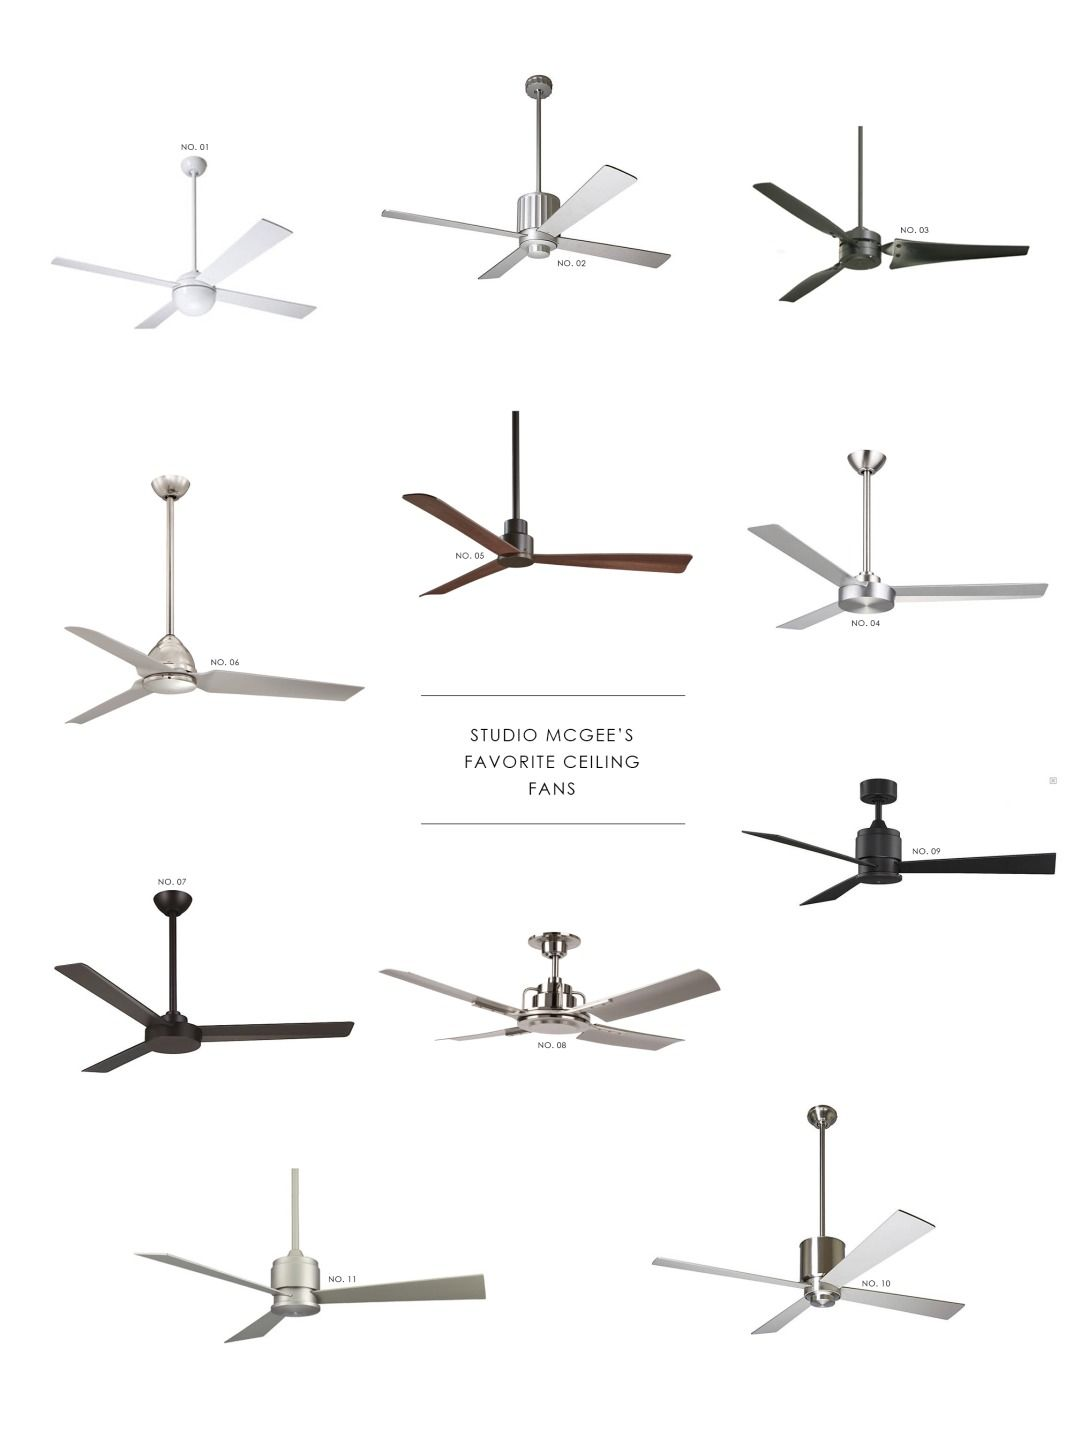 Our Top Picks Ceiling Fans In 2018 Studio Mcgee Blog Pinterest Fan Google On 3 Wires And Wiring A Without Light